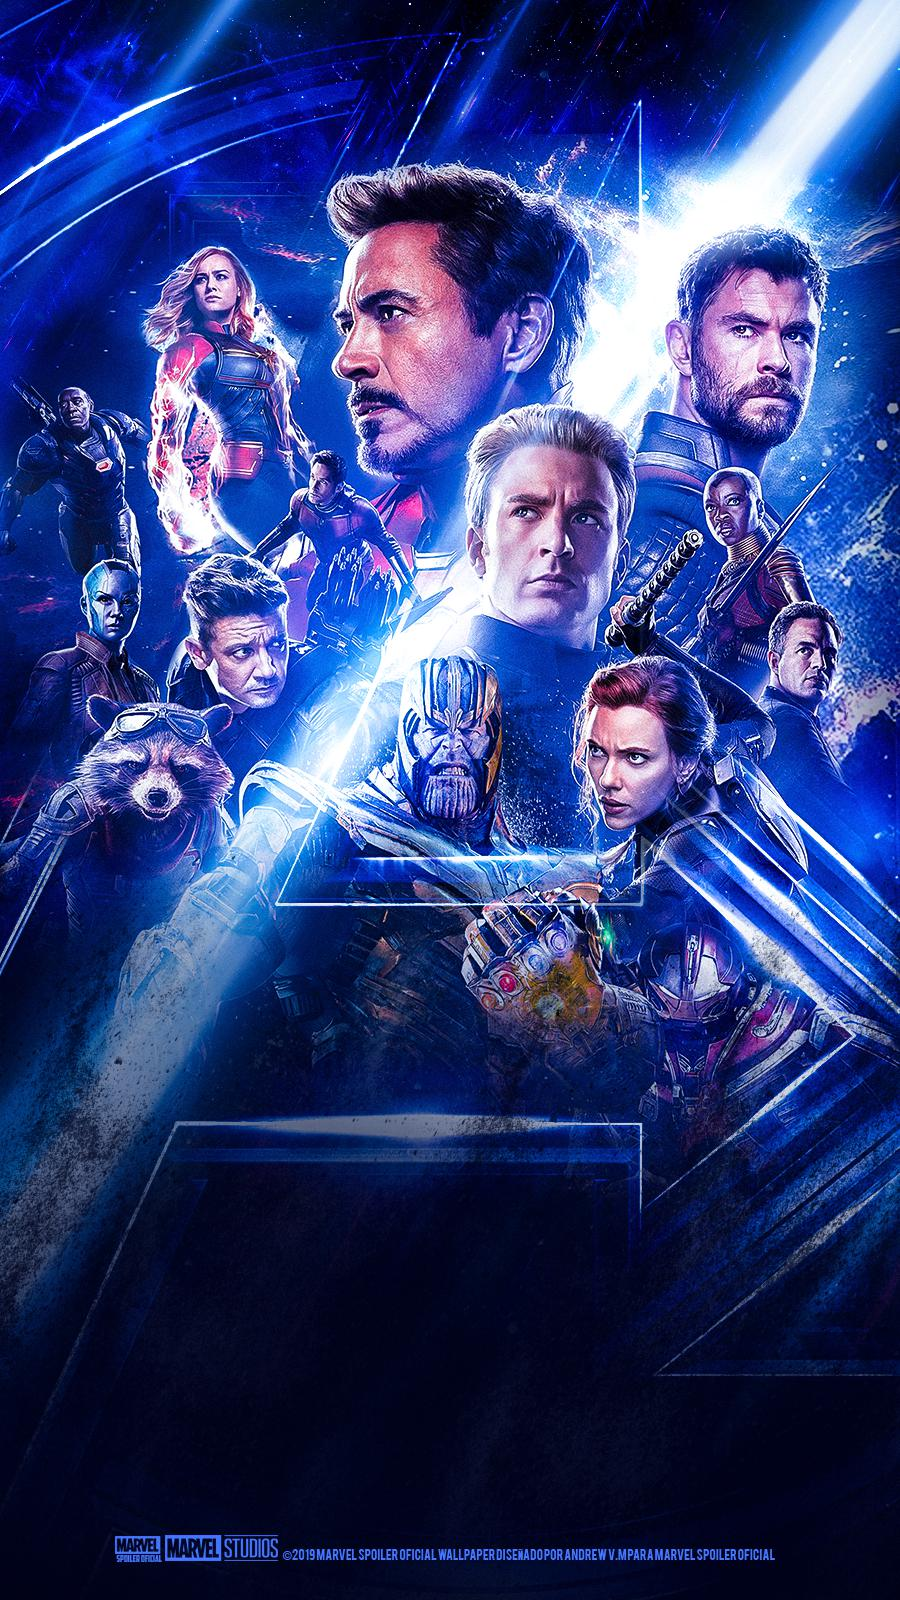 Avengers Endgame Wallpapers